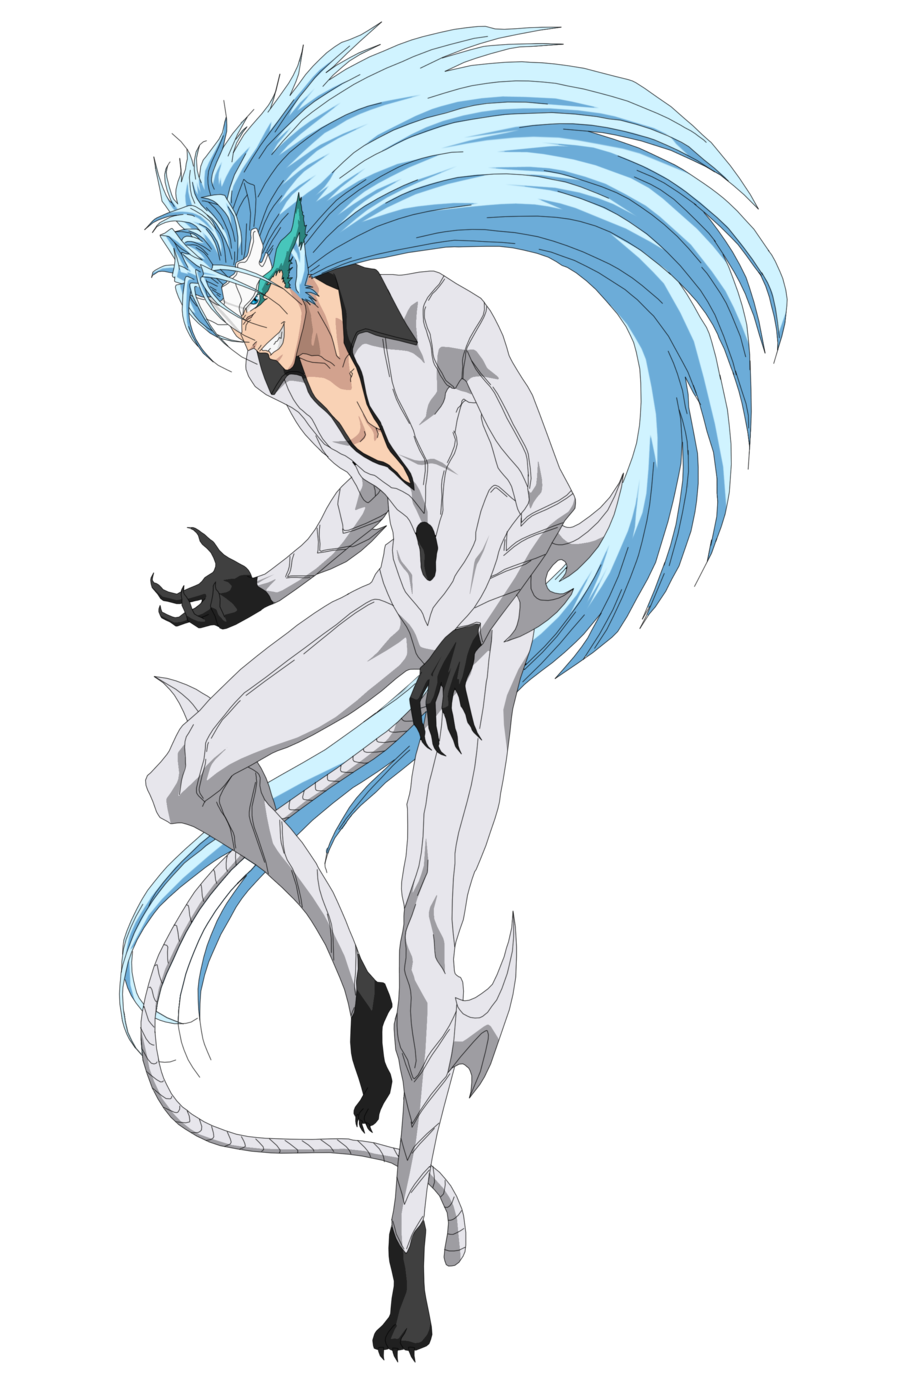 don t forget my name soul reaper and you better pray that you never hear it again grimmjow jaegerjaquez becau bleach anime bleach characters bleach art pinterest